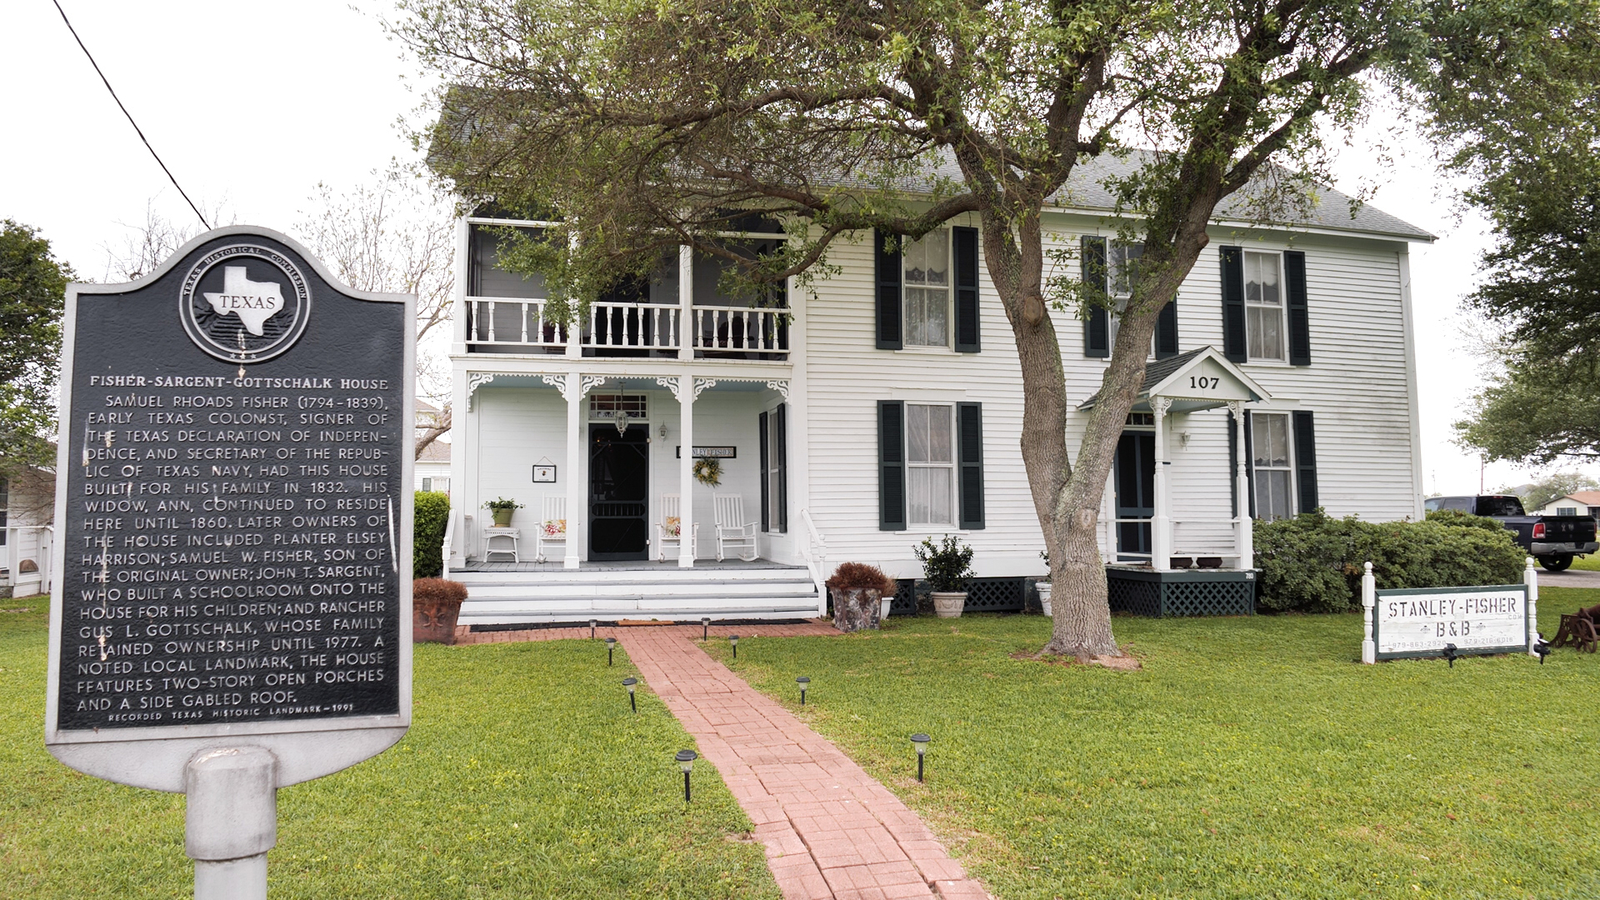 Family keeps history alive with B&B in one of Texas' oldest homes